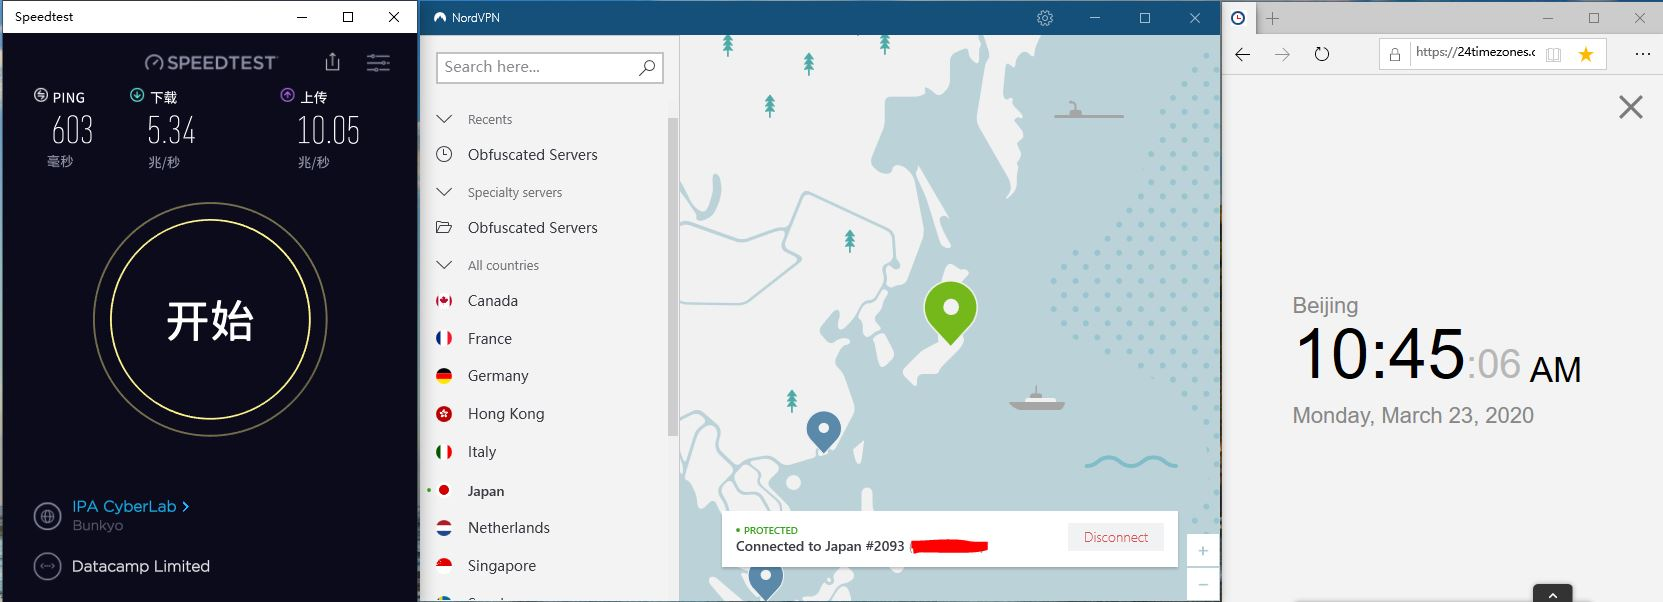 Windows10 NordVPN Japan #2093 中国VPN翻墙 科学上网 Youtube测速 - 20200323